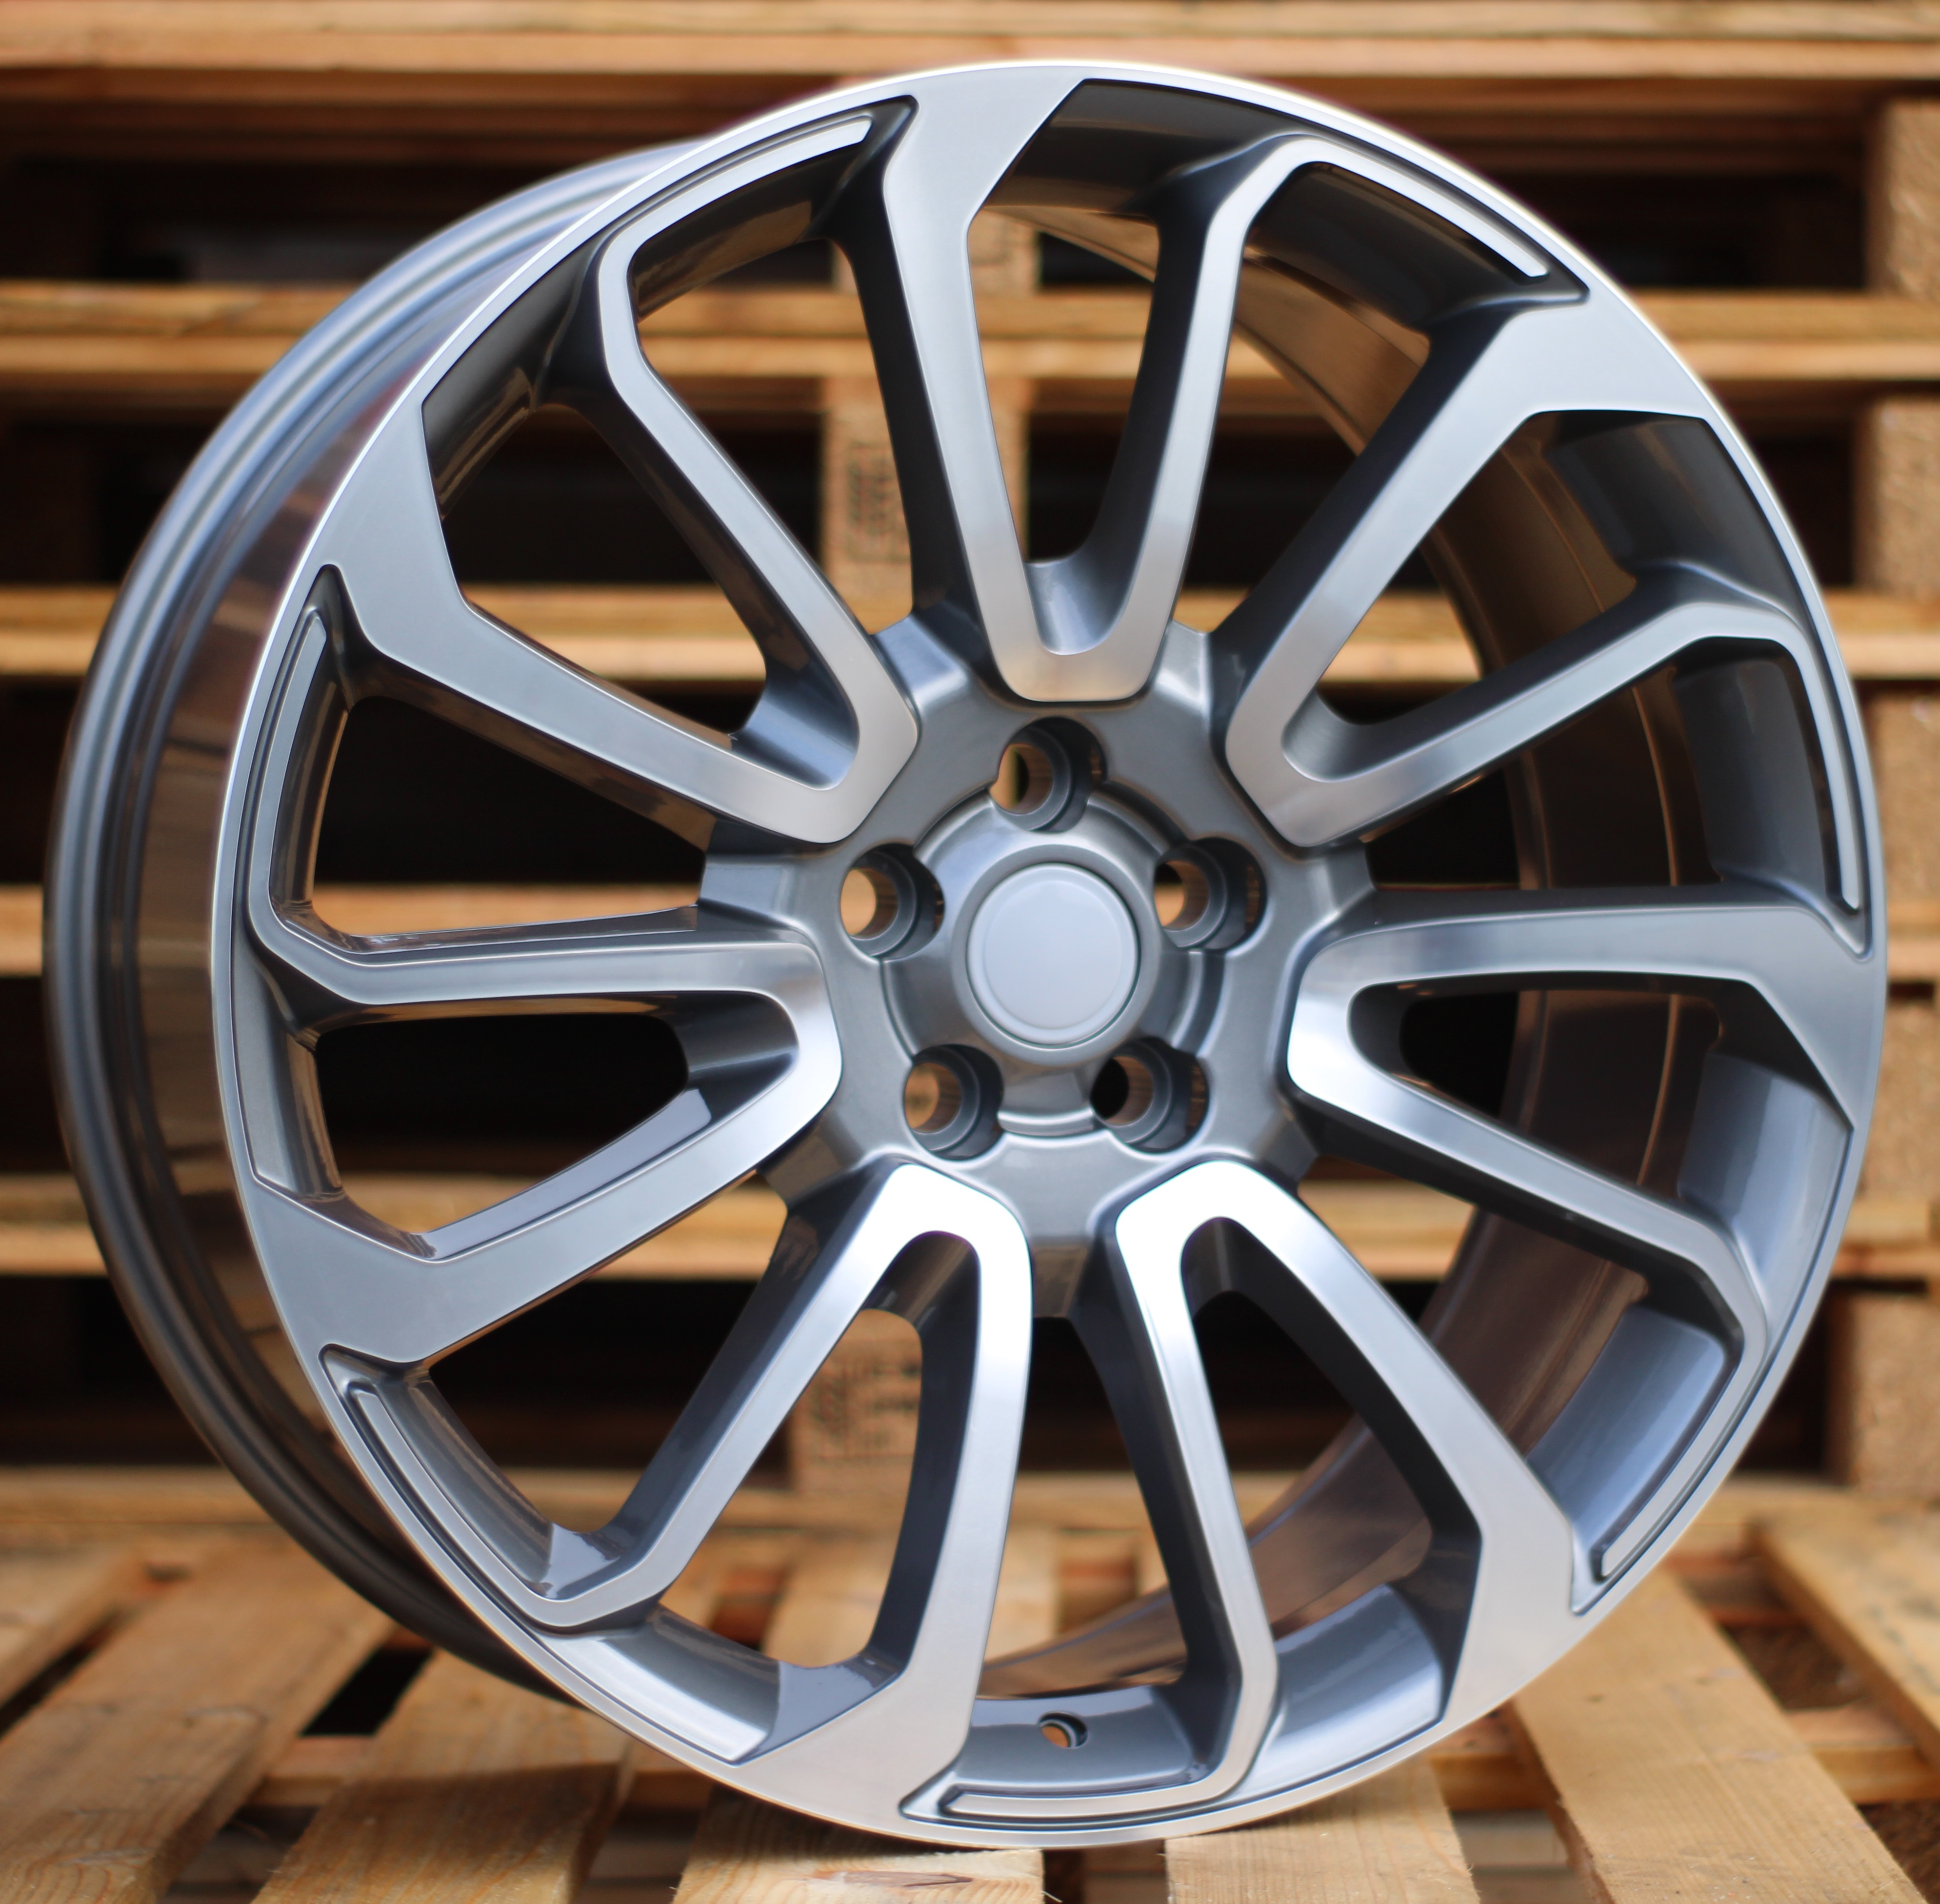 L21X9.5 5X108 ET45 73.1 BY959 MG RWR LAND(K5) 9.5x21 ET45 5x108